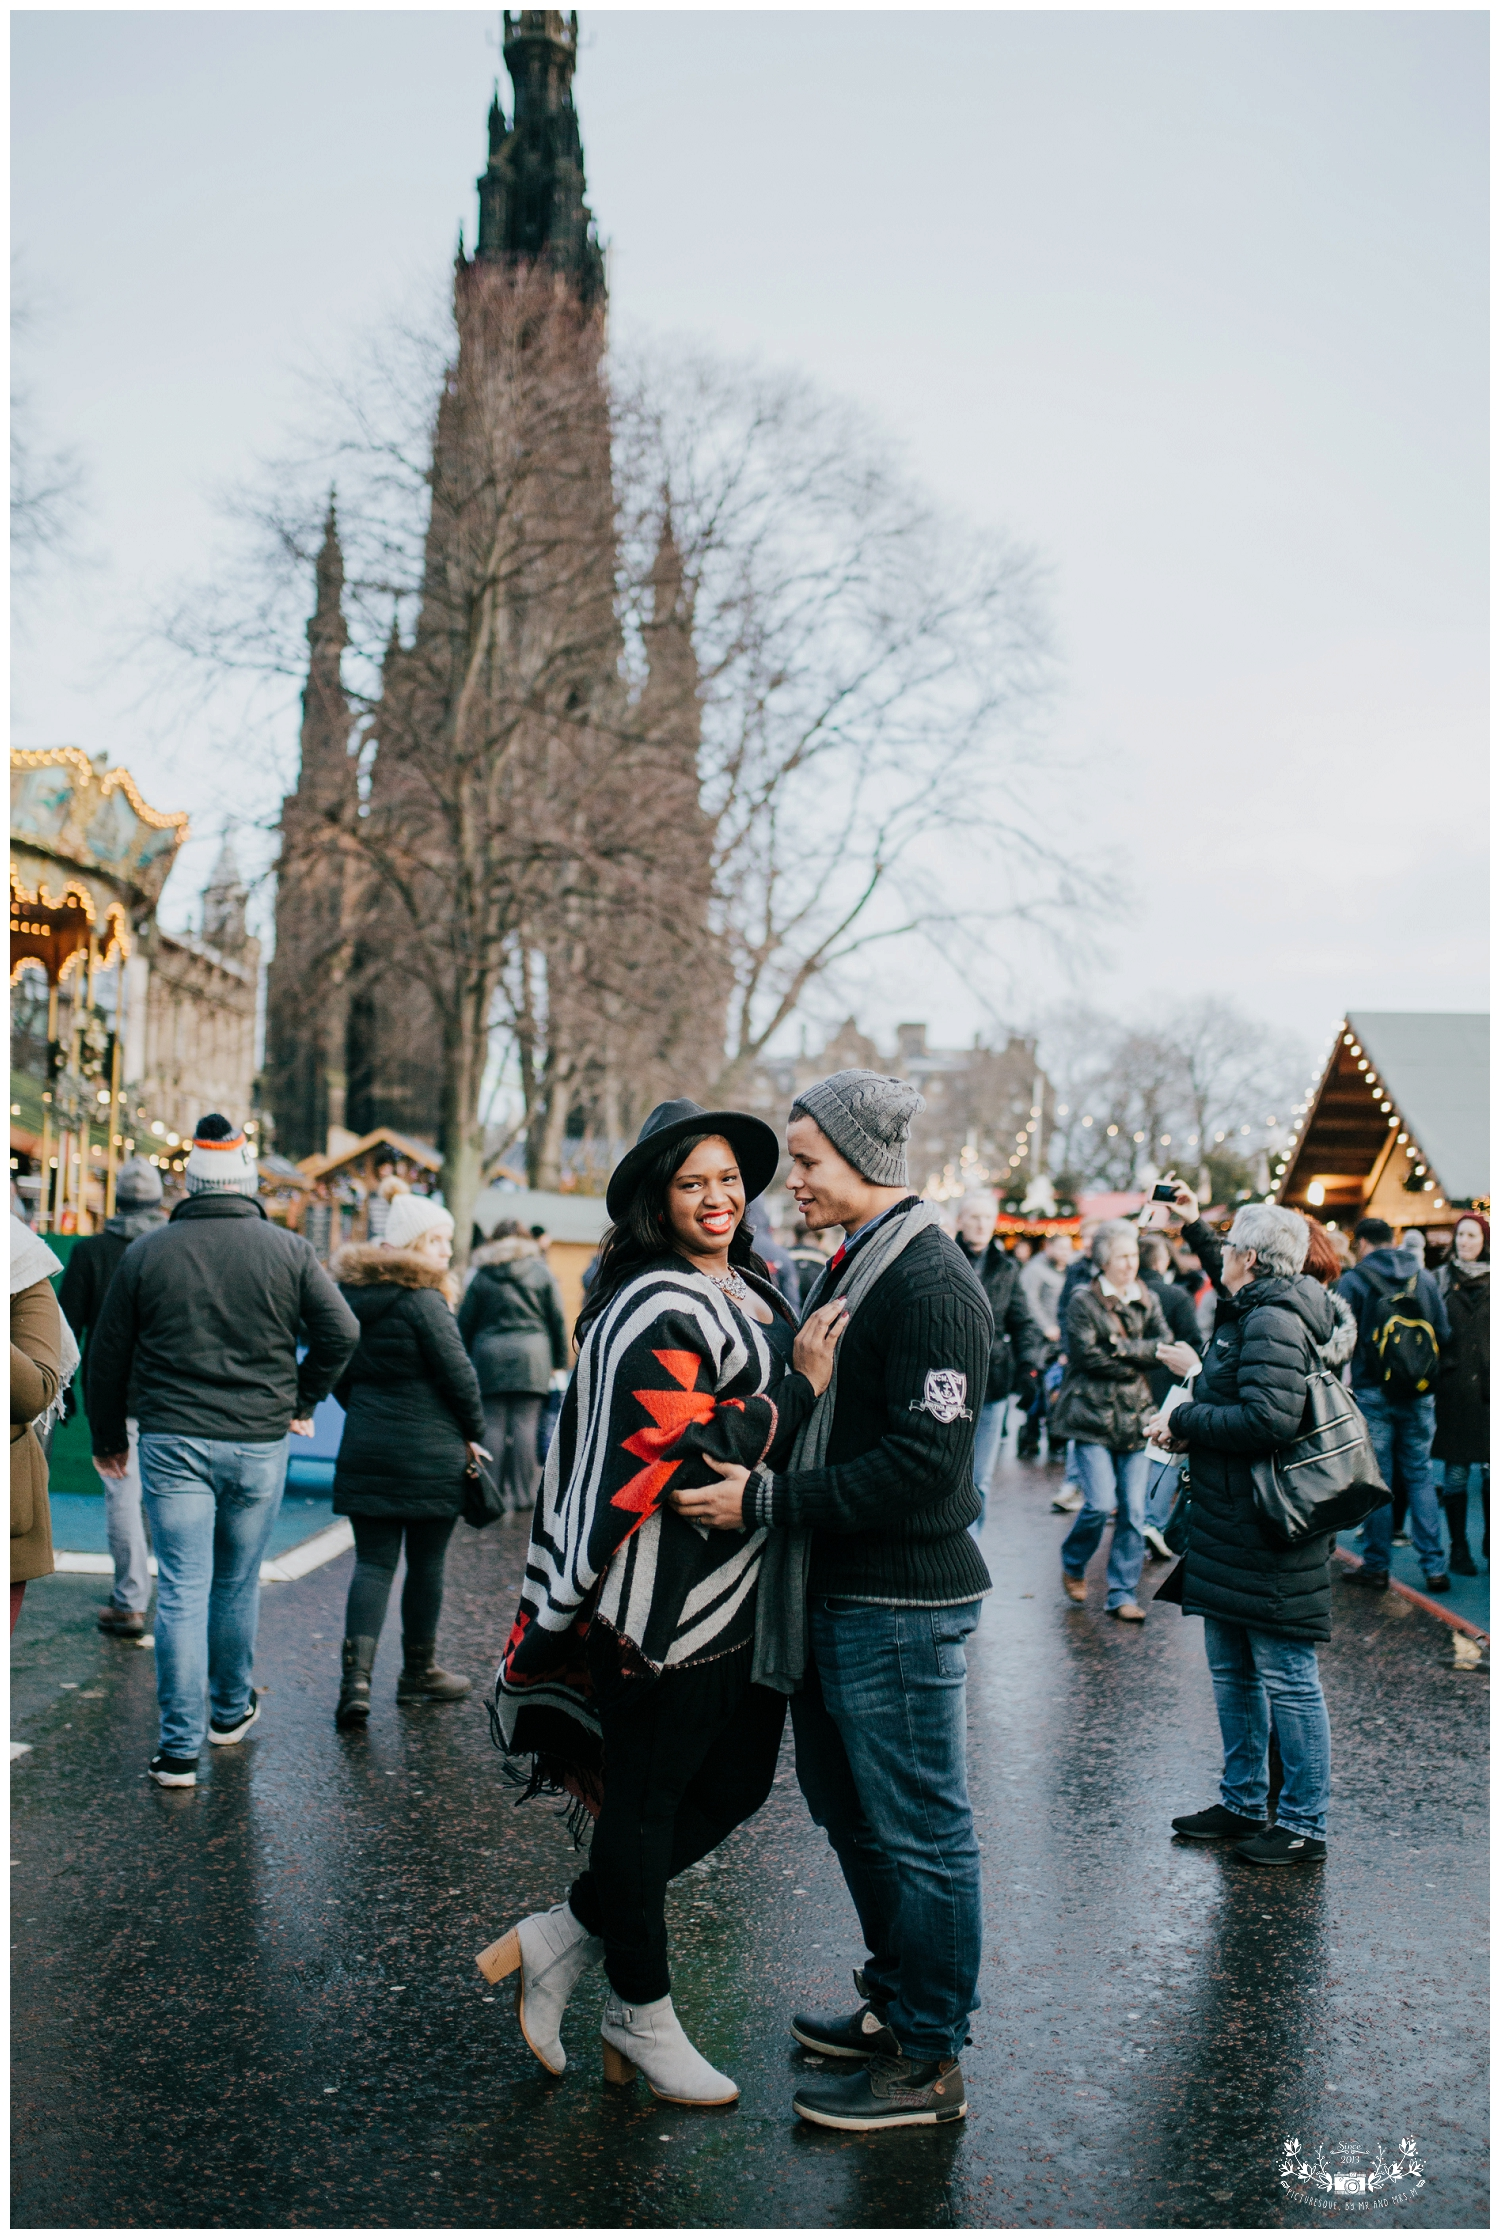 Edinburgh Christmas Market, Couples Shoot, Wedding Photography,  Scotland, Falkirk, Glasgow, Edinburgh, Picturesque by Mr and Mrs M_0003 - Copy.jpg